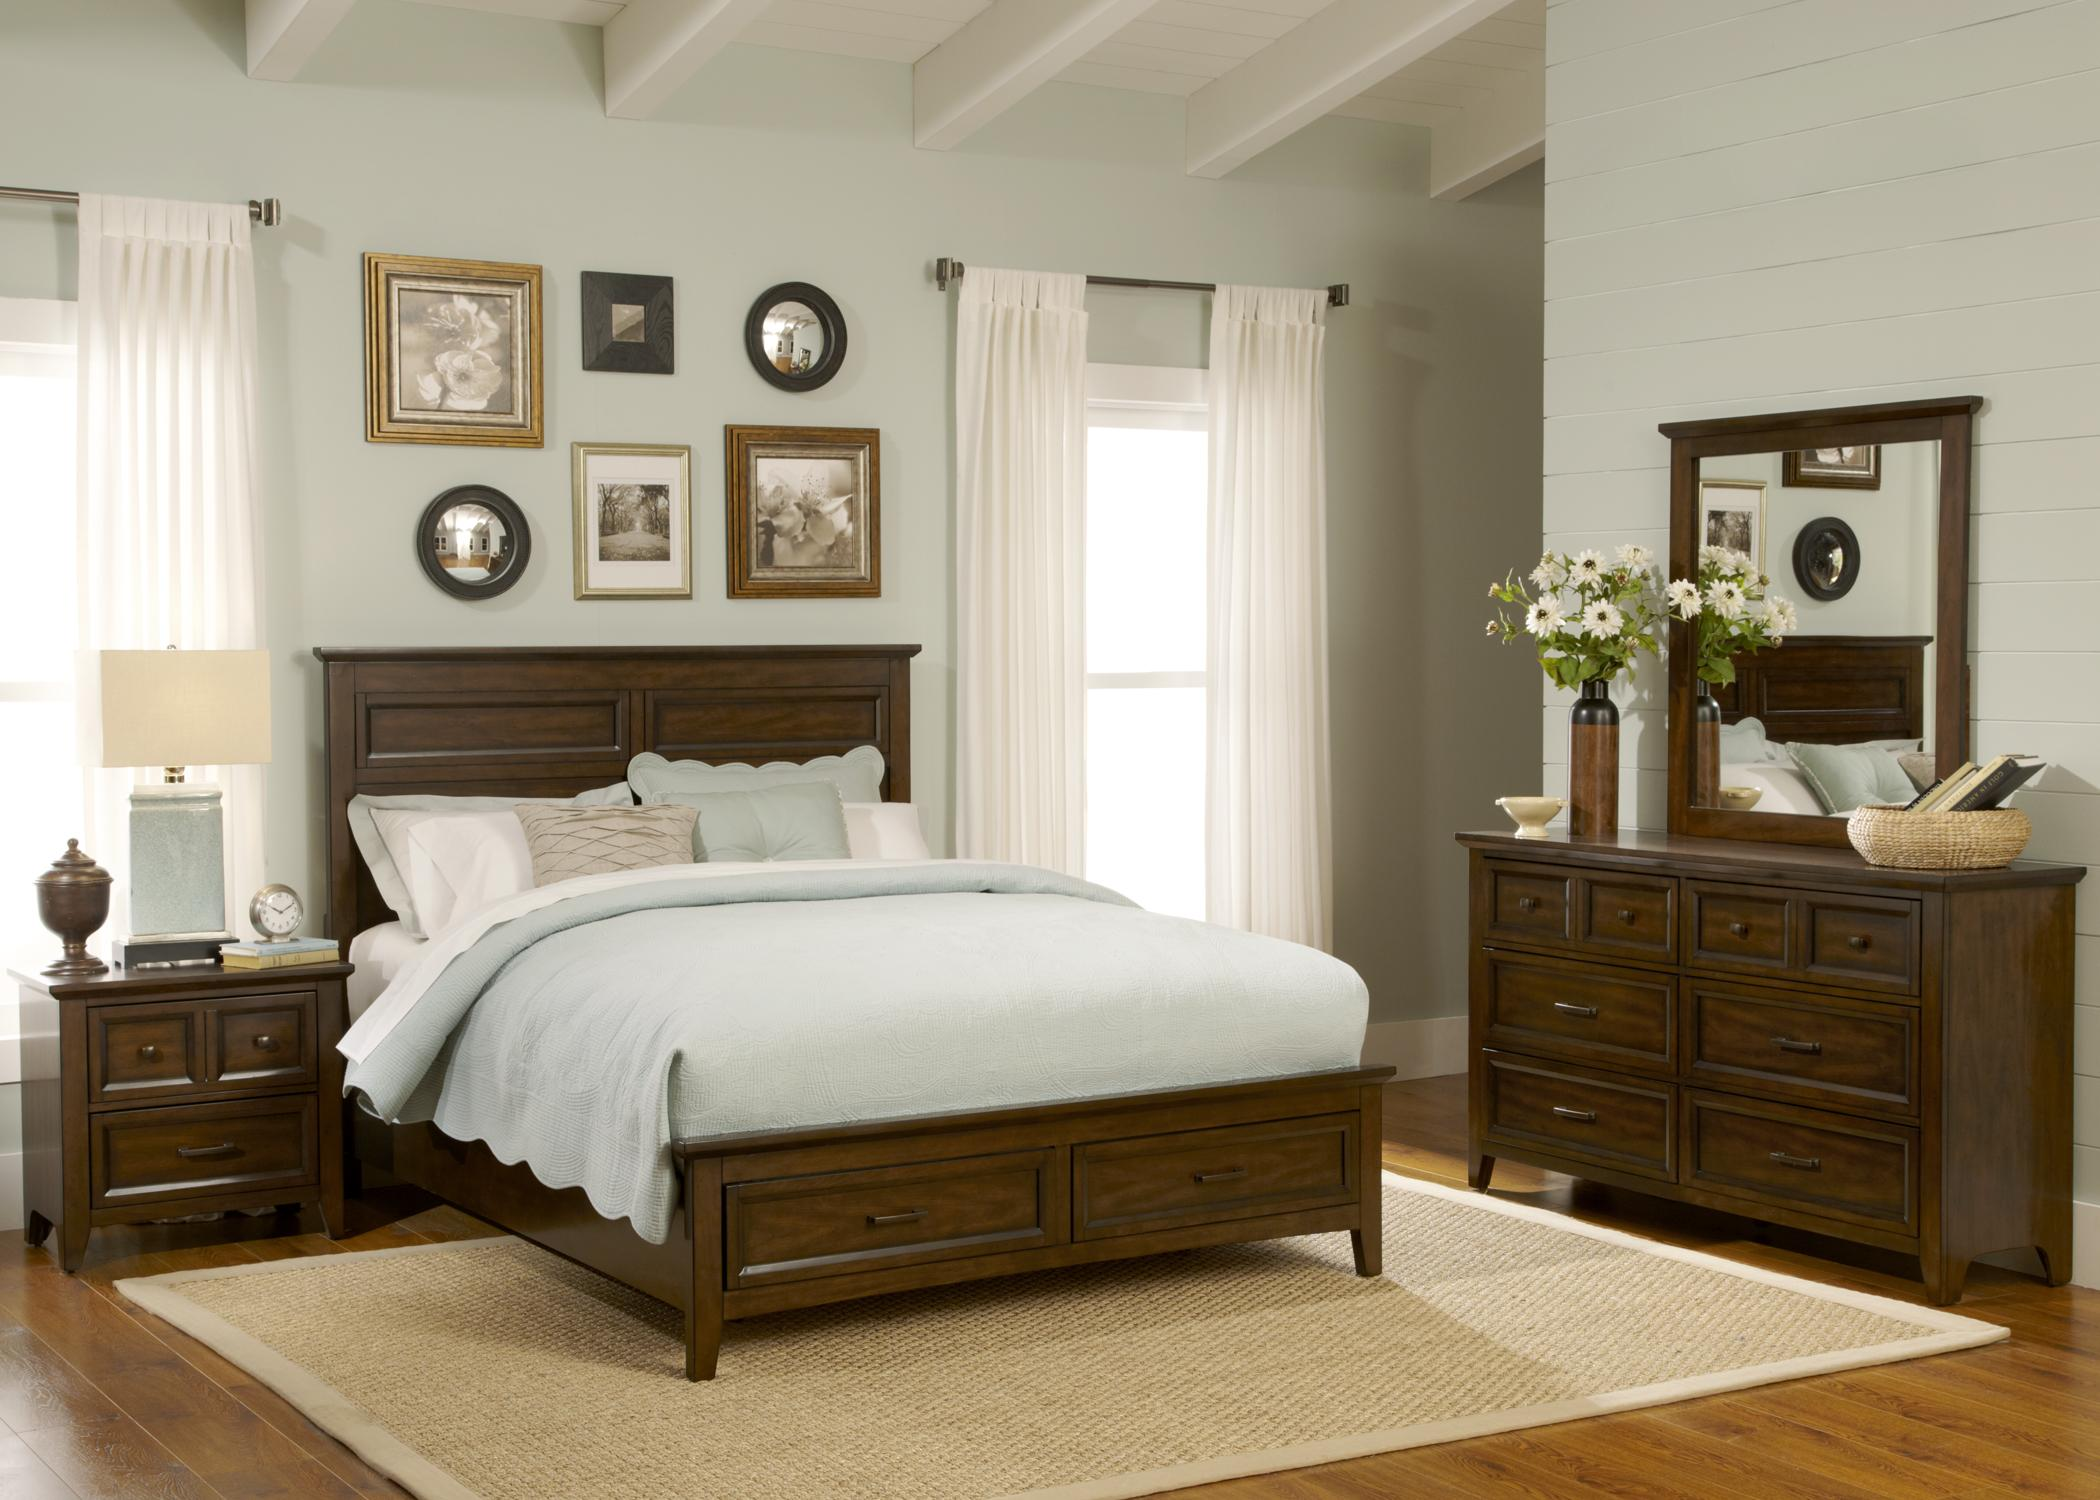 Liberty Furniture Laurel Creek Queen Bedroom Group 2 - Item Number: 461-BR-GP219